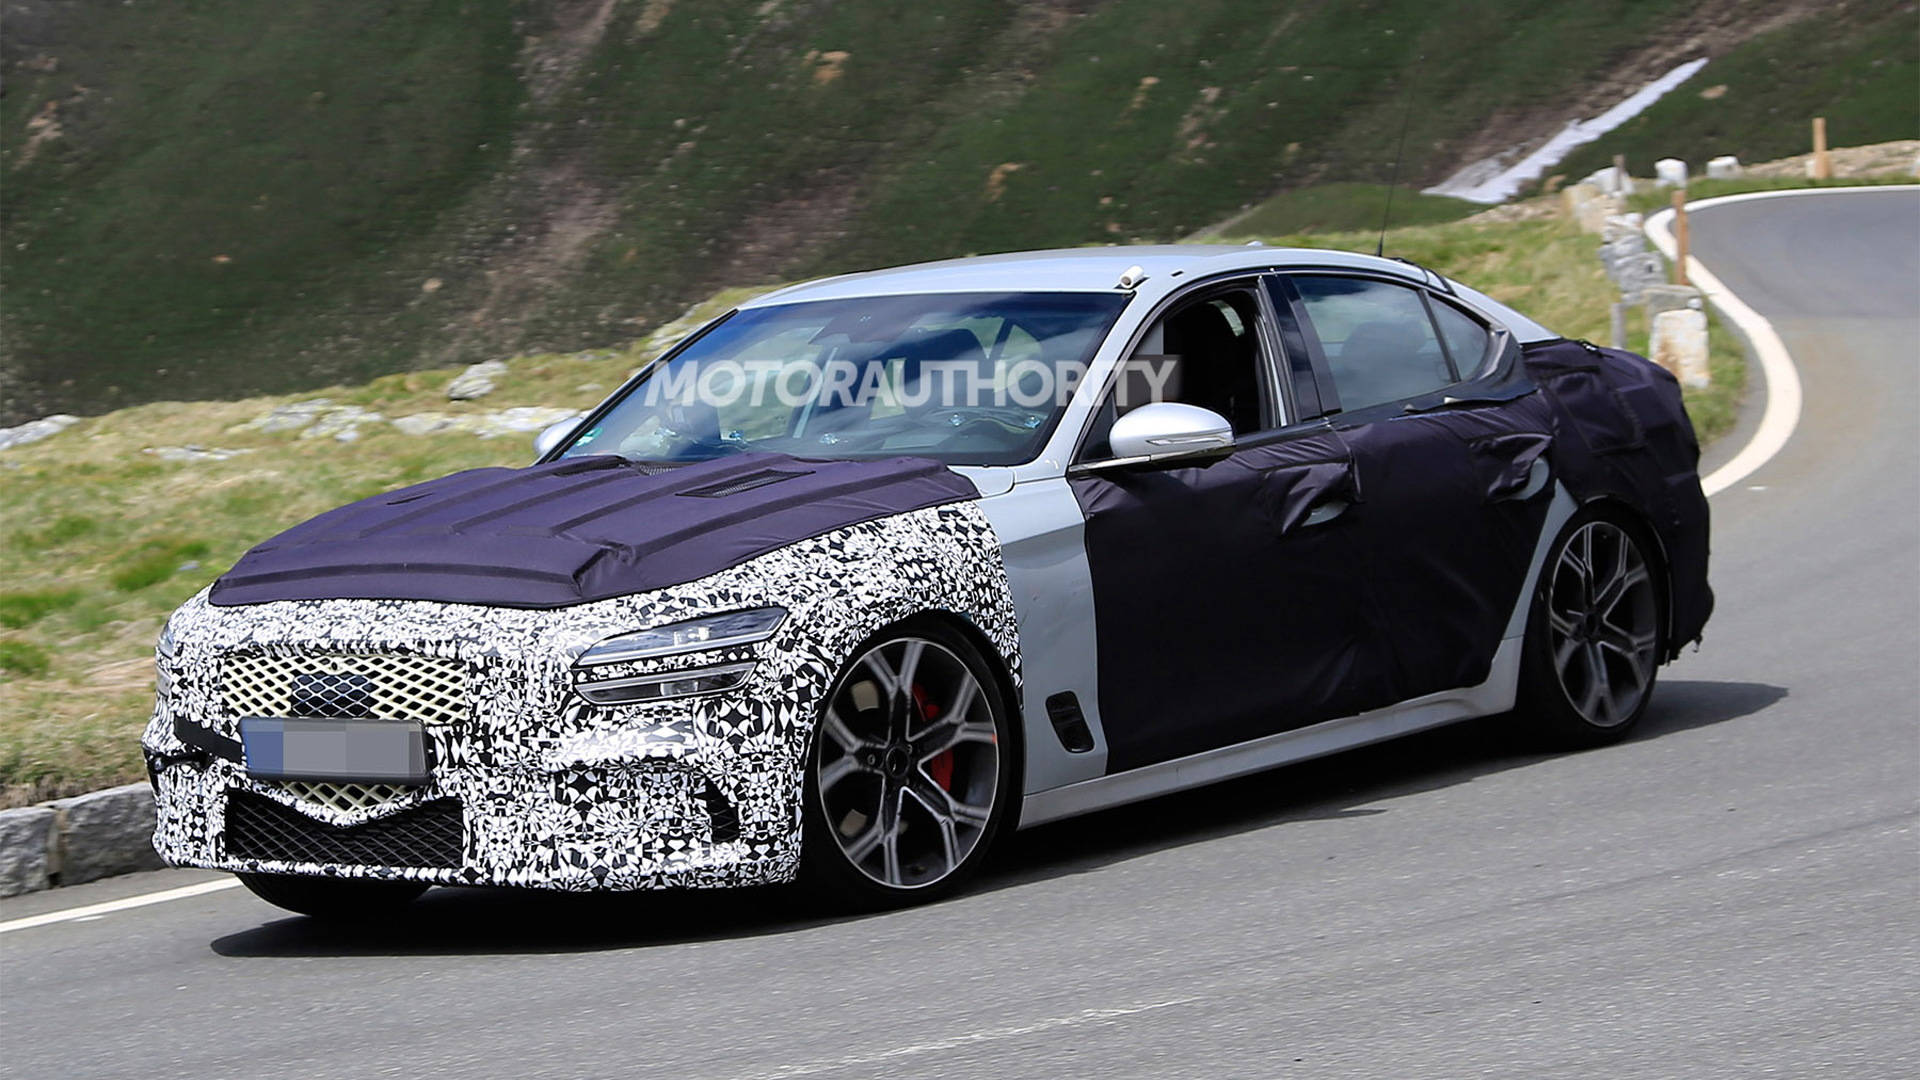 2022 Genesis G70 facelift spy shots - Photo credit: S. Baldauf/SB-Medien